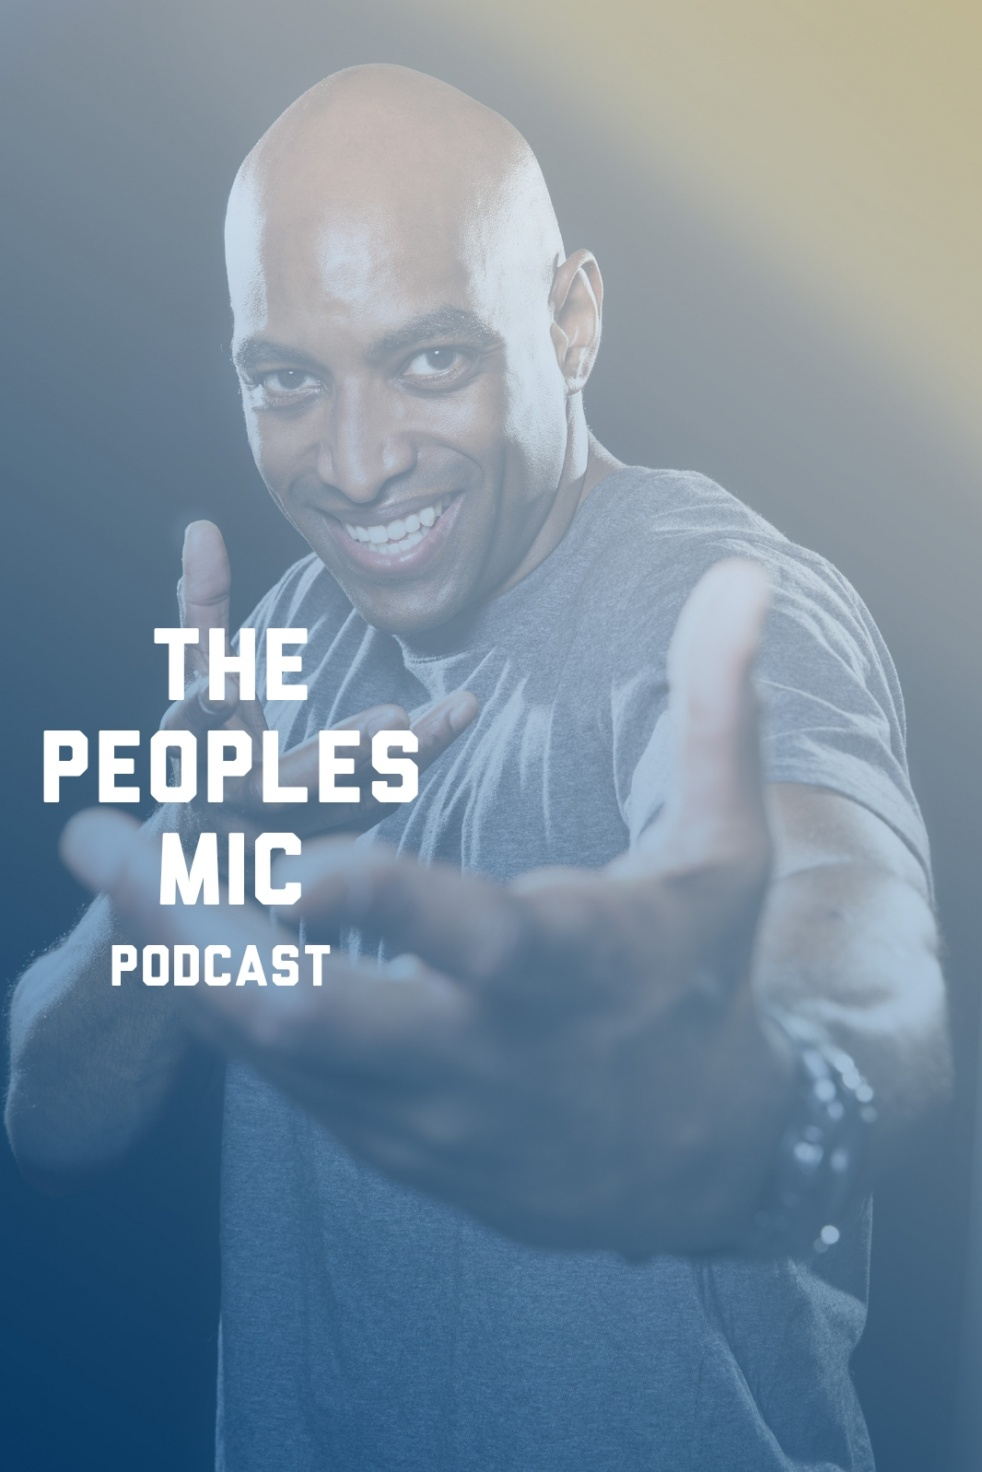 The Peoples Mic Podcast - Cover Image